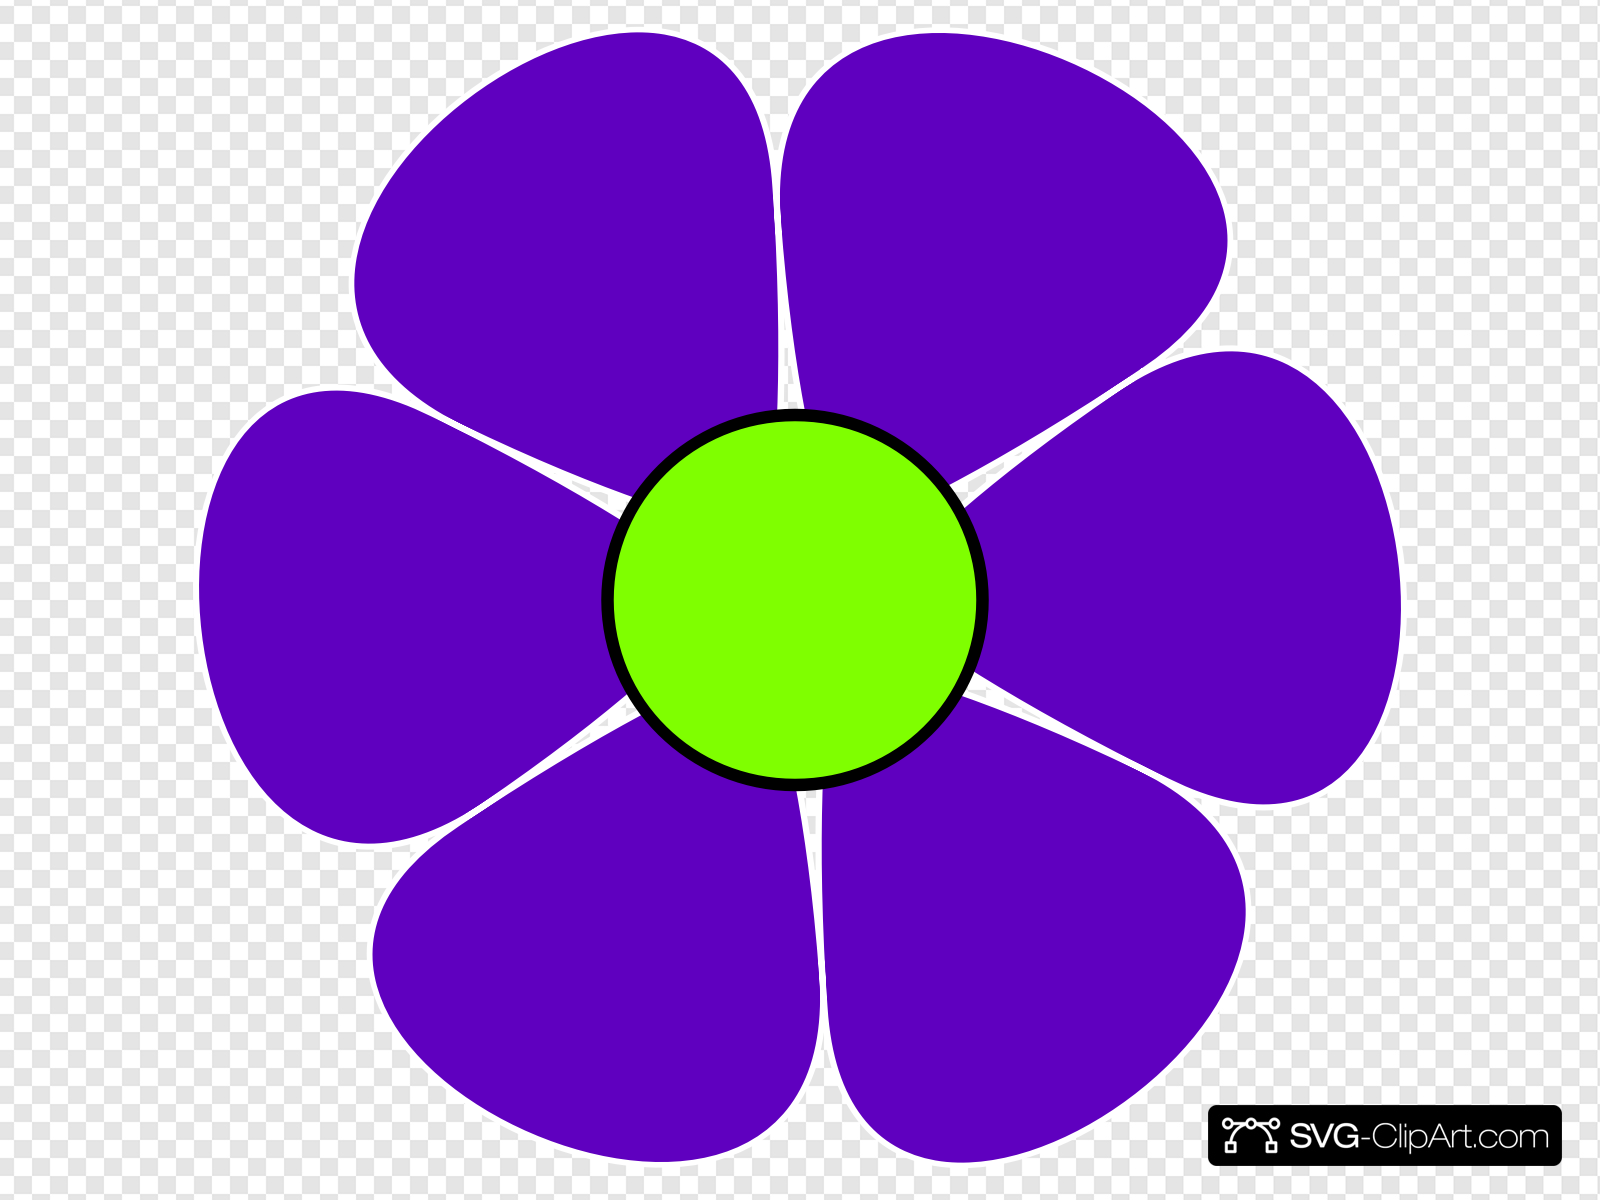 Flower Power Clip art, Icon and SVG.